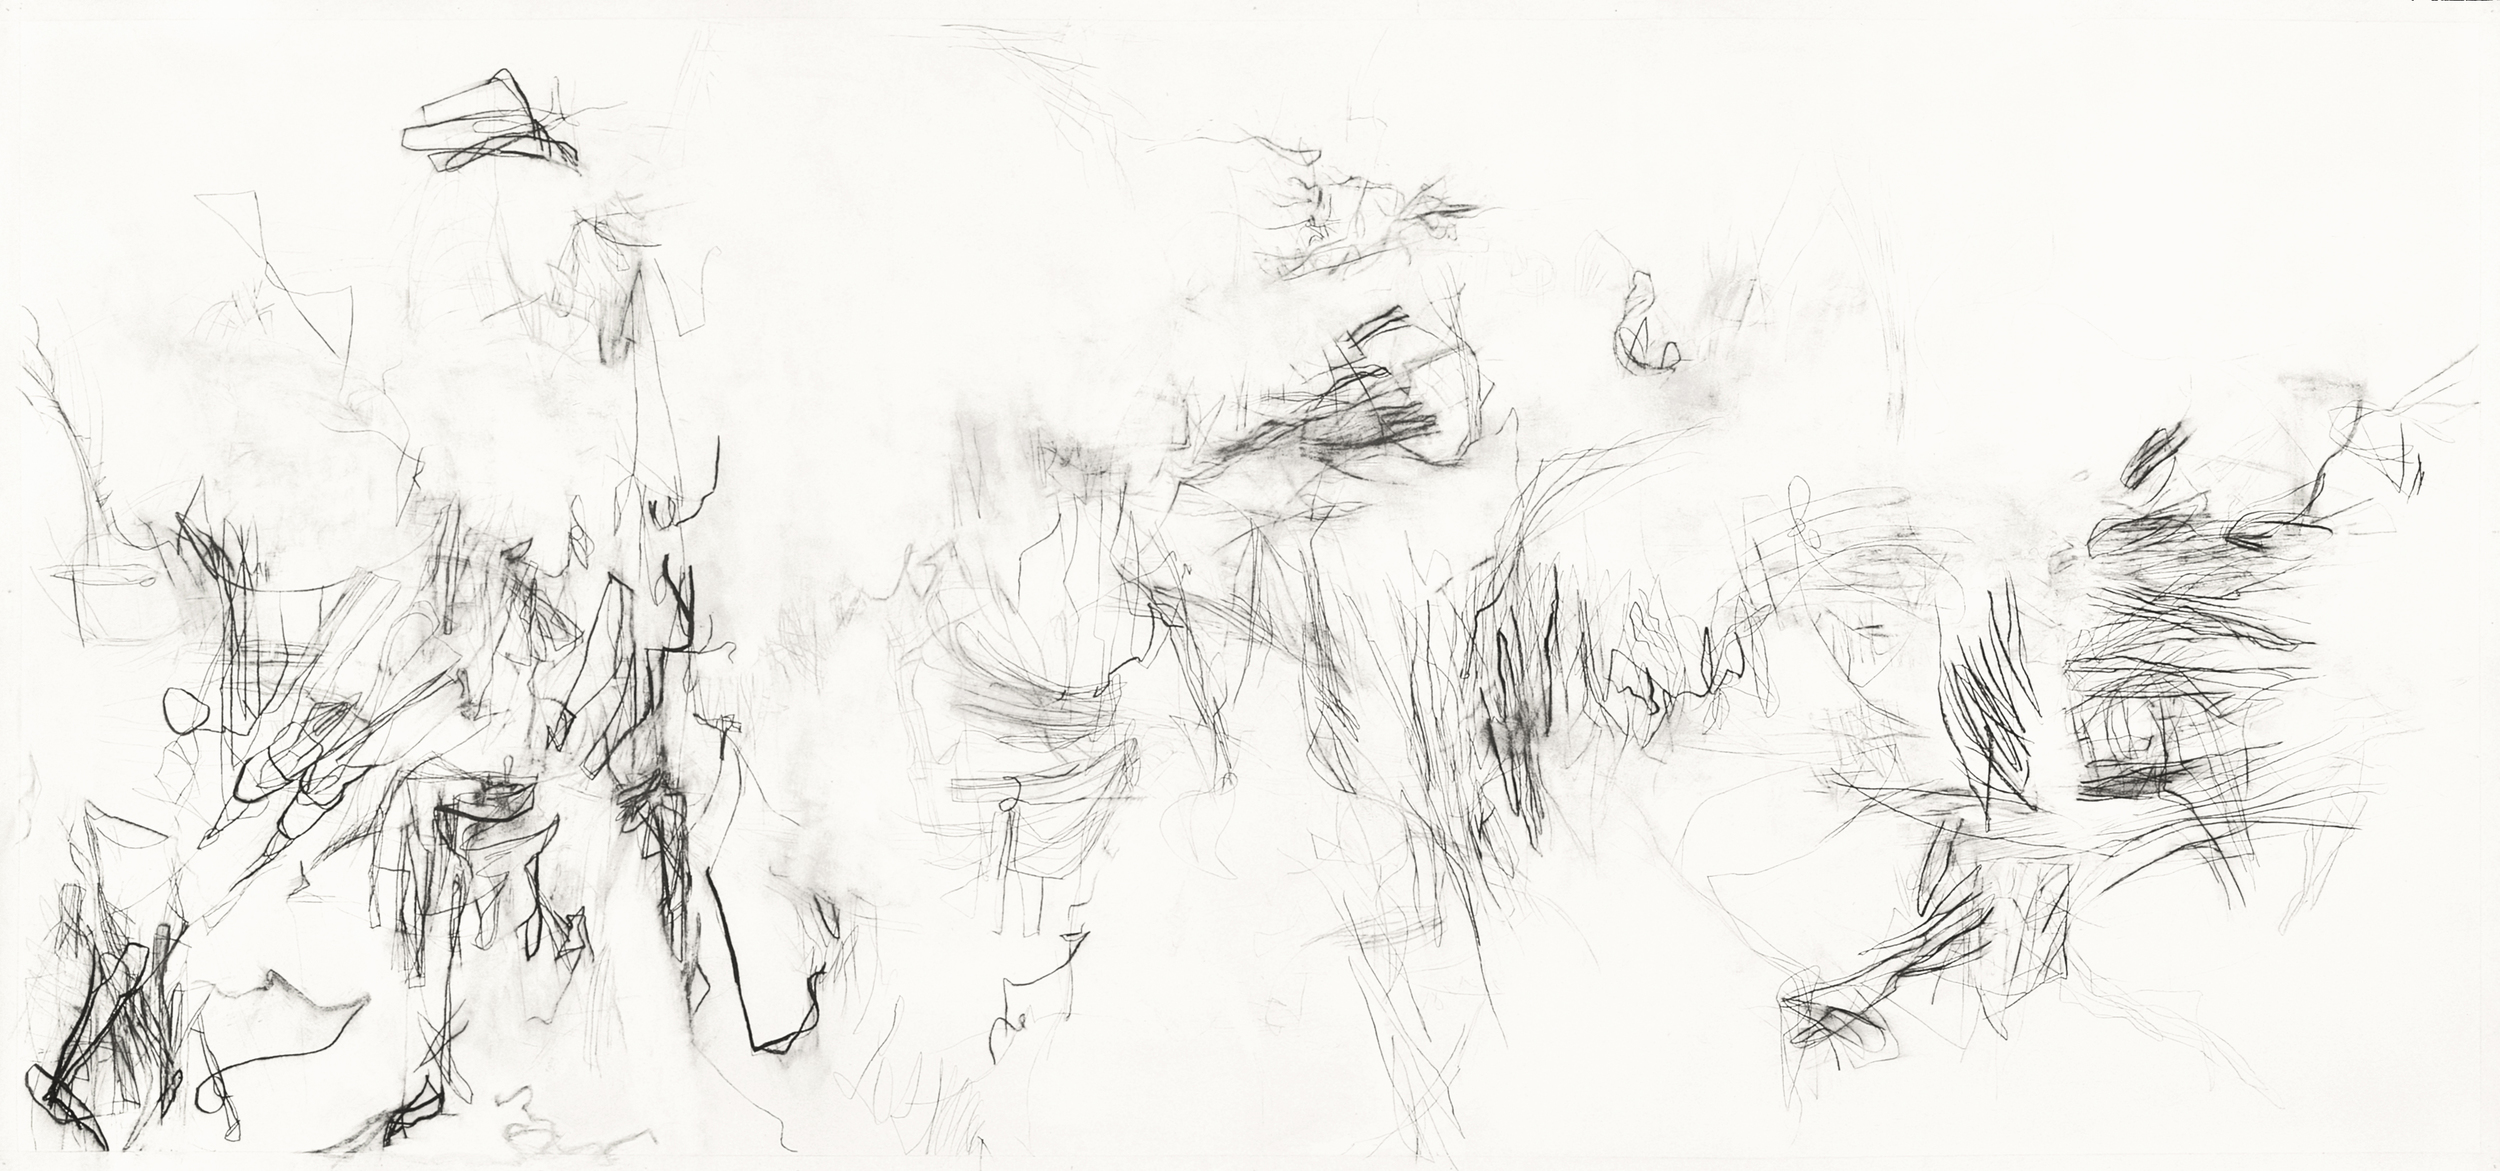 Untitled (L.00.1), 2000 charcoal, rabbit skin glue on paper 108 x 48 inches Collection: The Bryant Group